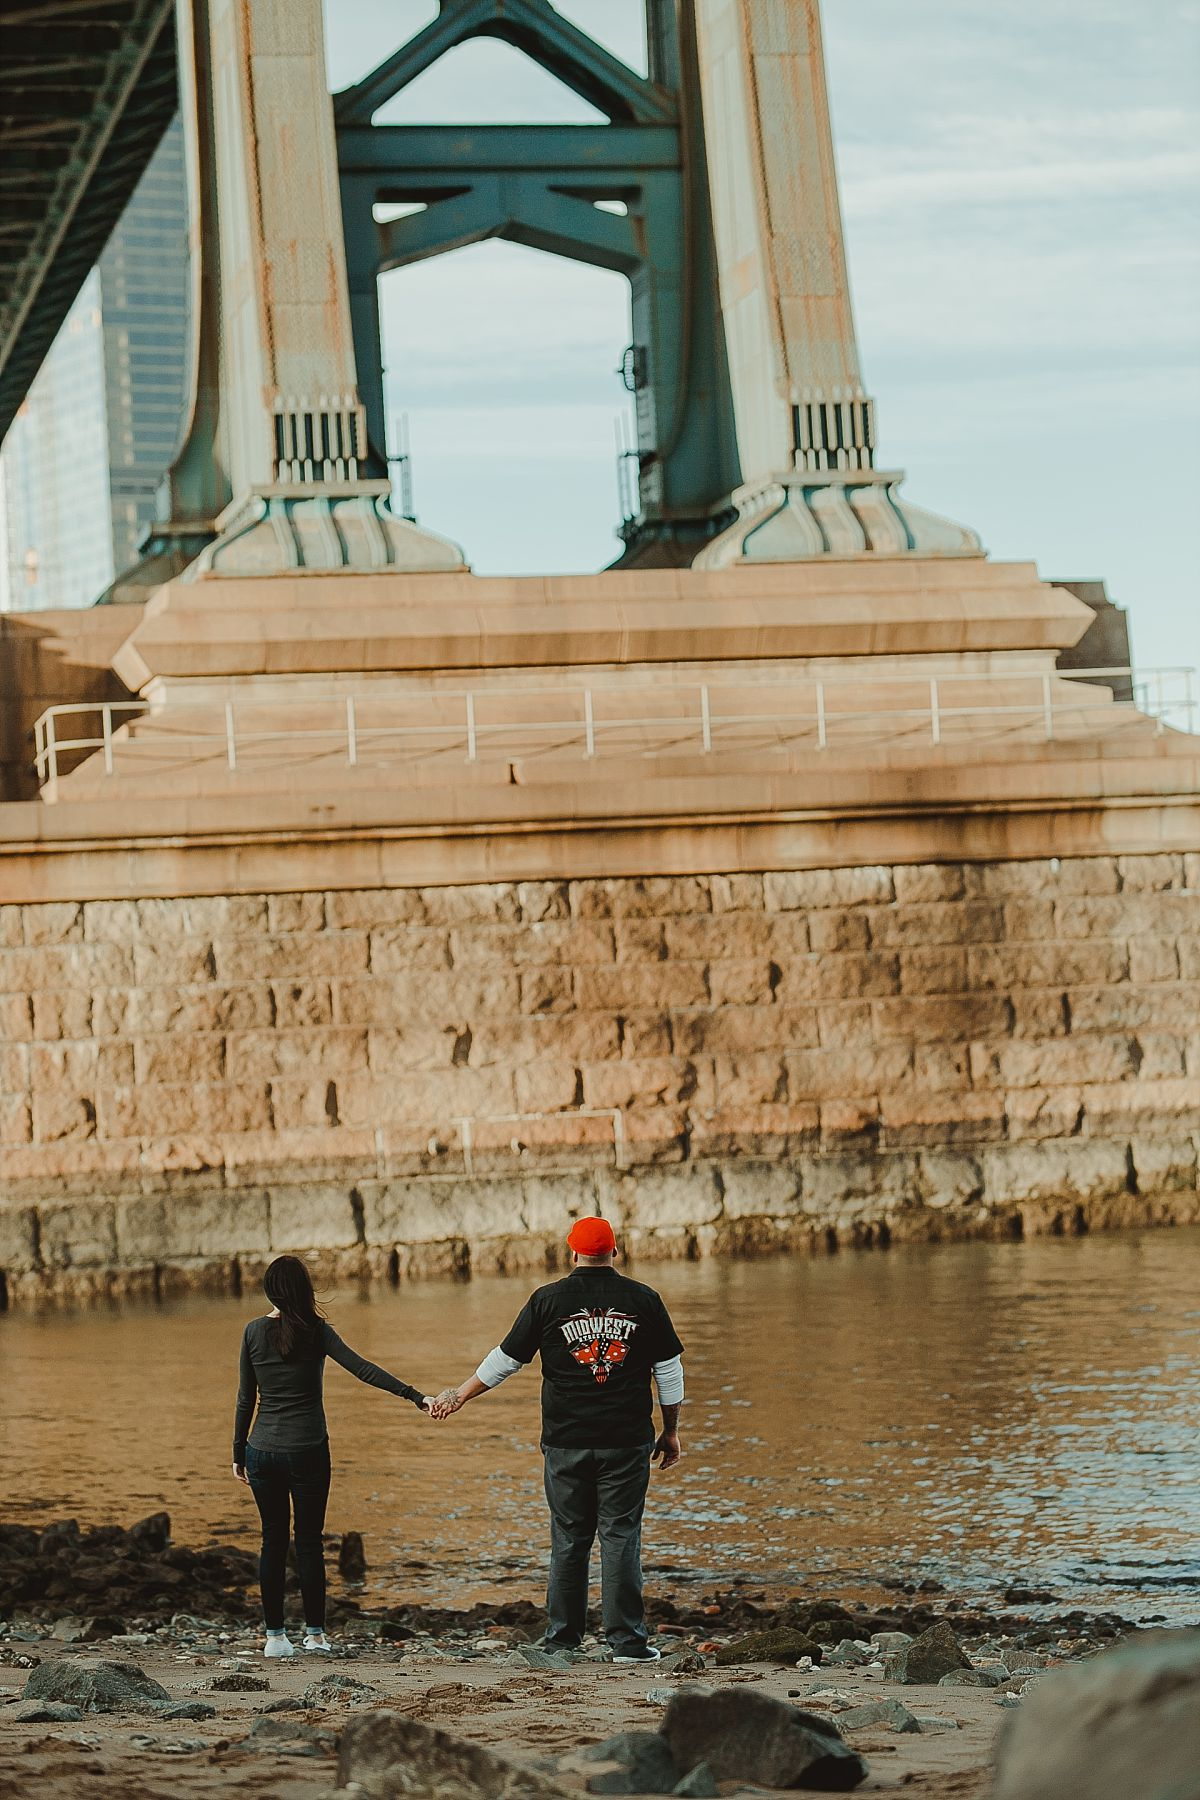 photo of couple standing underneath the manhattan bride in dumbo brooklyn during couples photoshoot. krystil mcdowall photography takes candid family photos